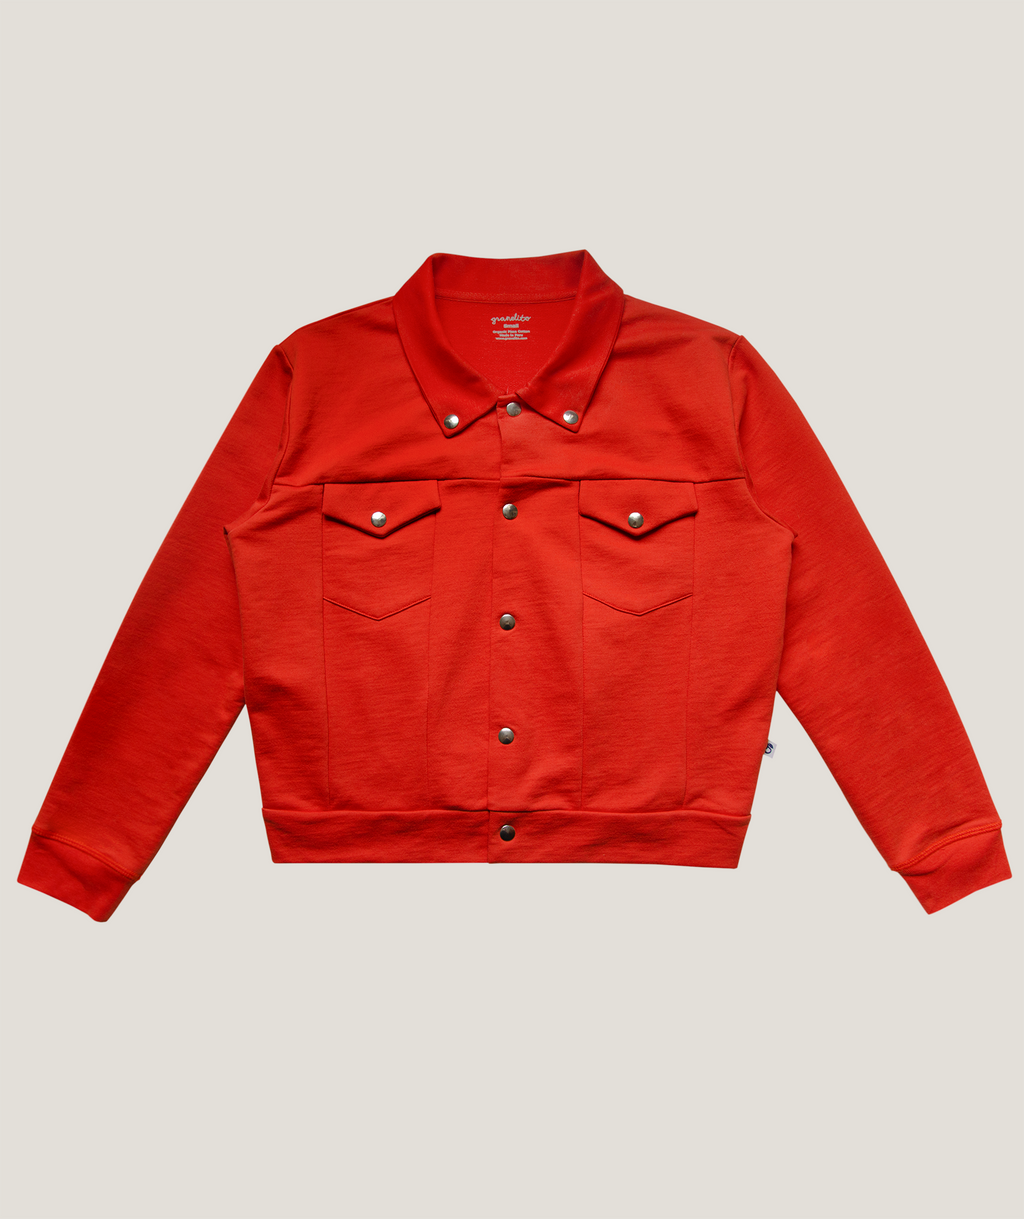 Bright Red Jersey Jacket ADULT- 100% Organic Pima Cotton